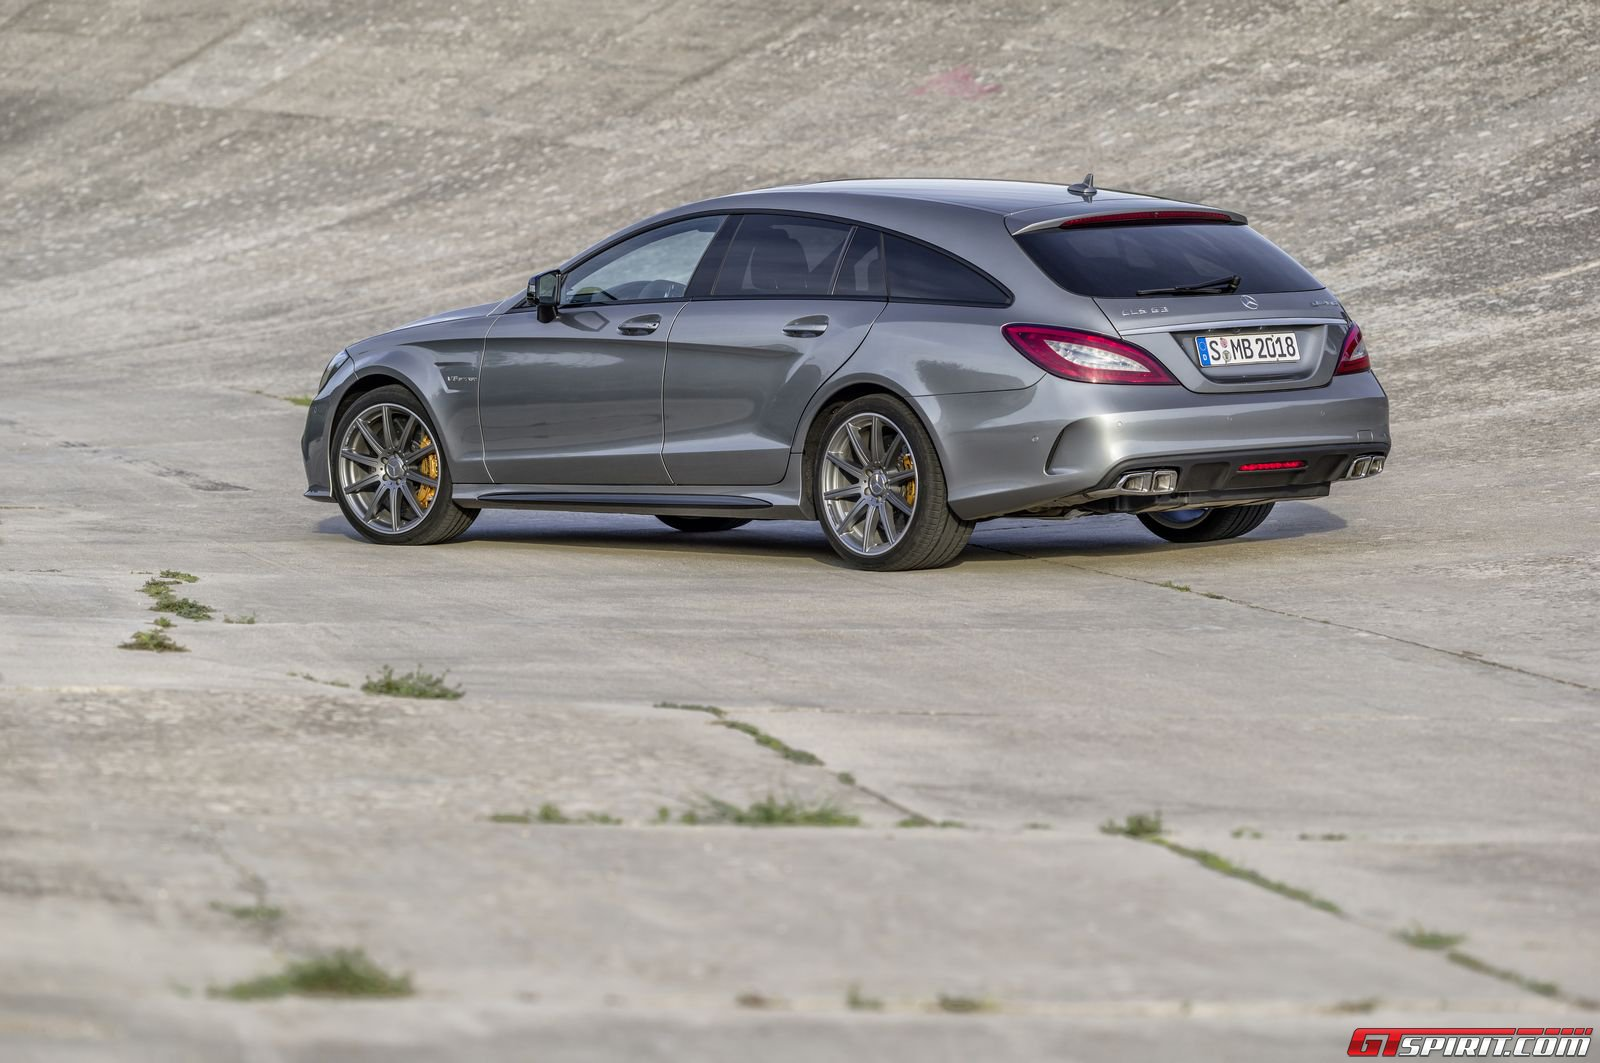 2015 mercedes benz cls 63 s amg review gtspirit. Black Bedroom Furniture Sets. Home Design Ideas